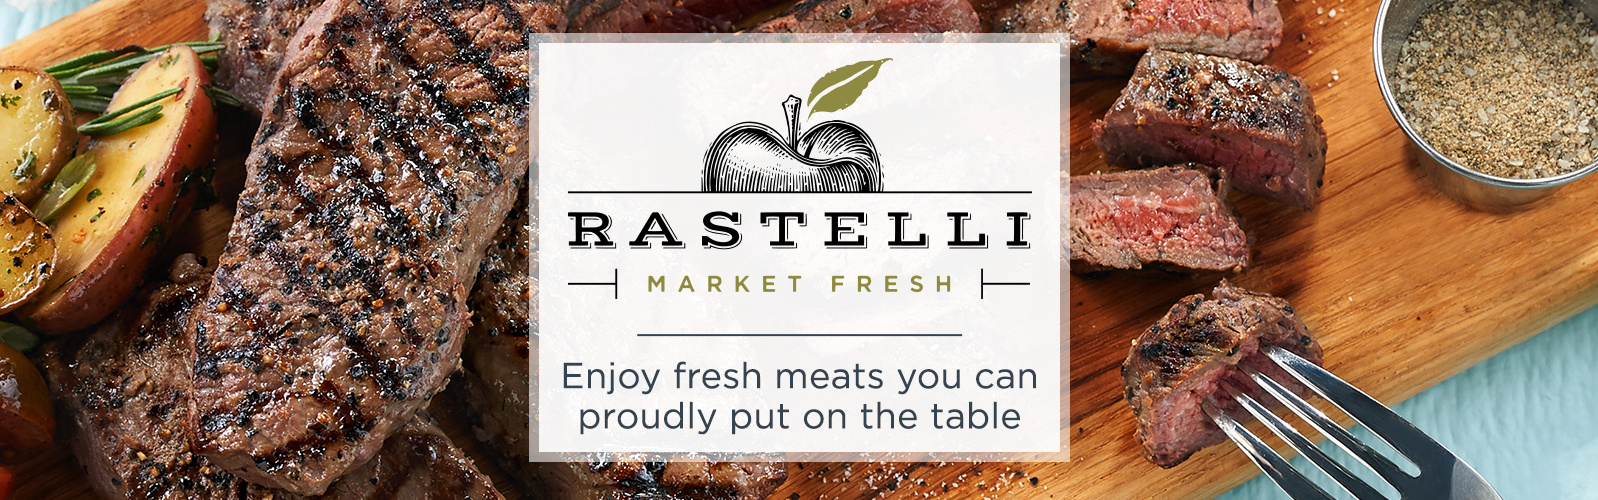 Rastelli Market Fresh. Enjoy fresh meats you can proudly put on the table